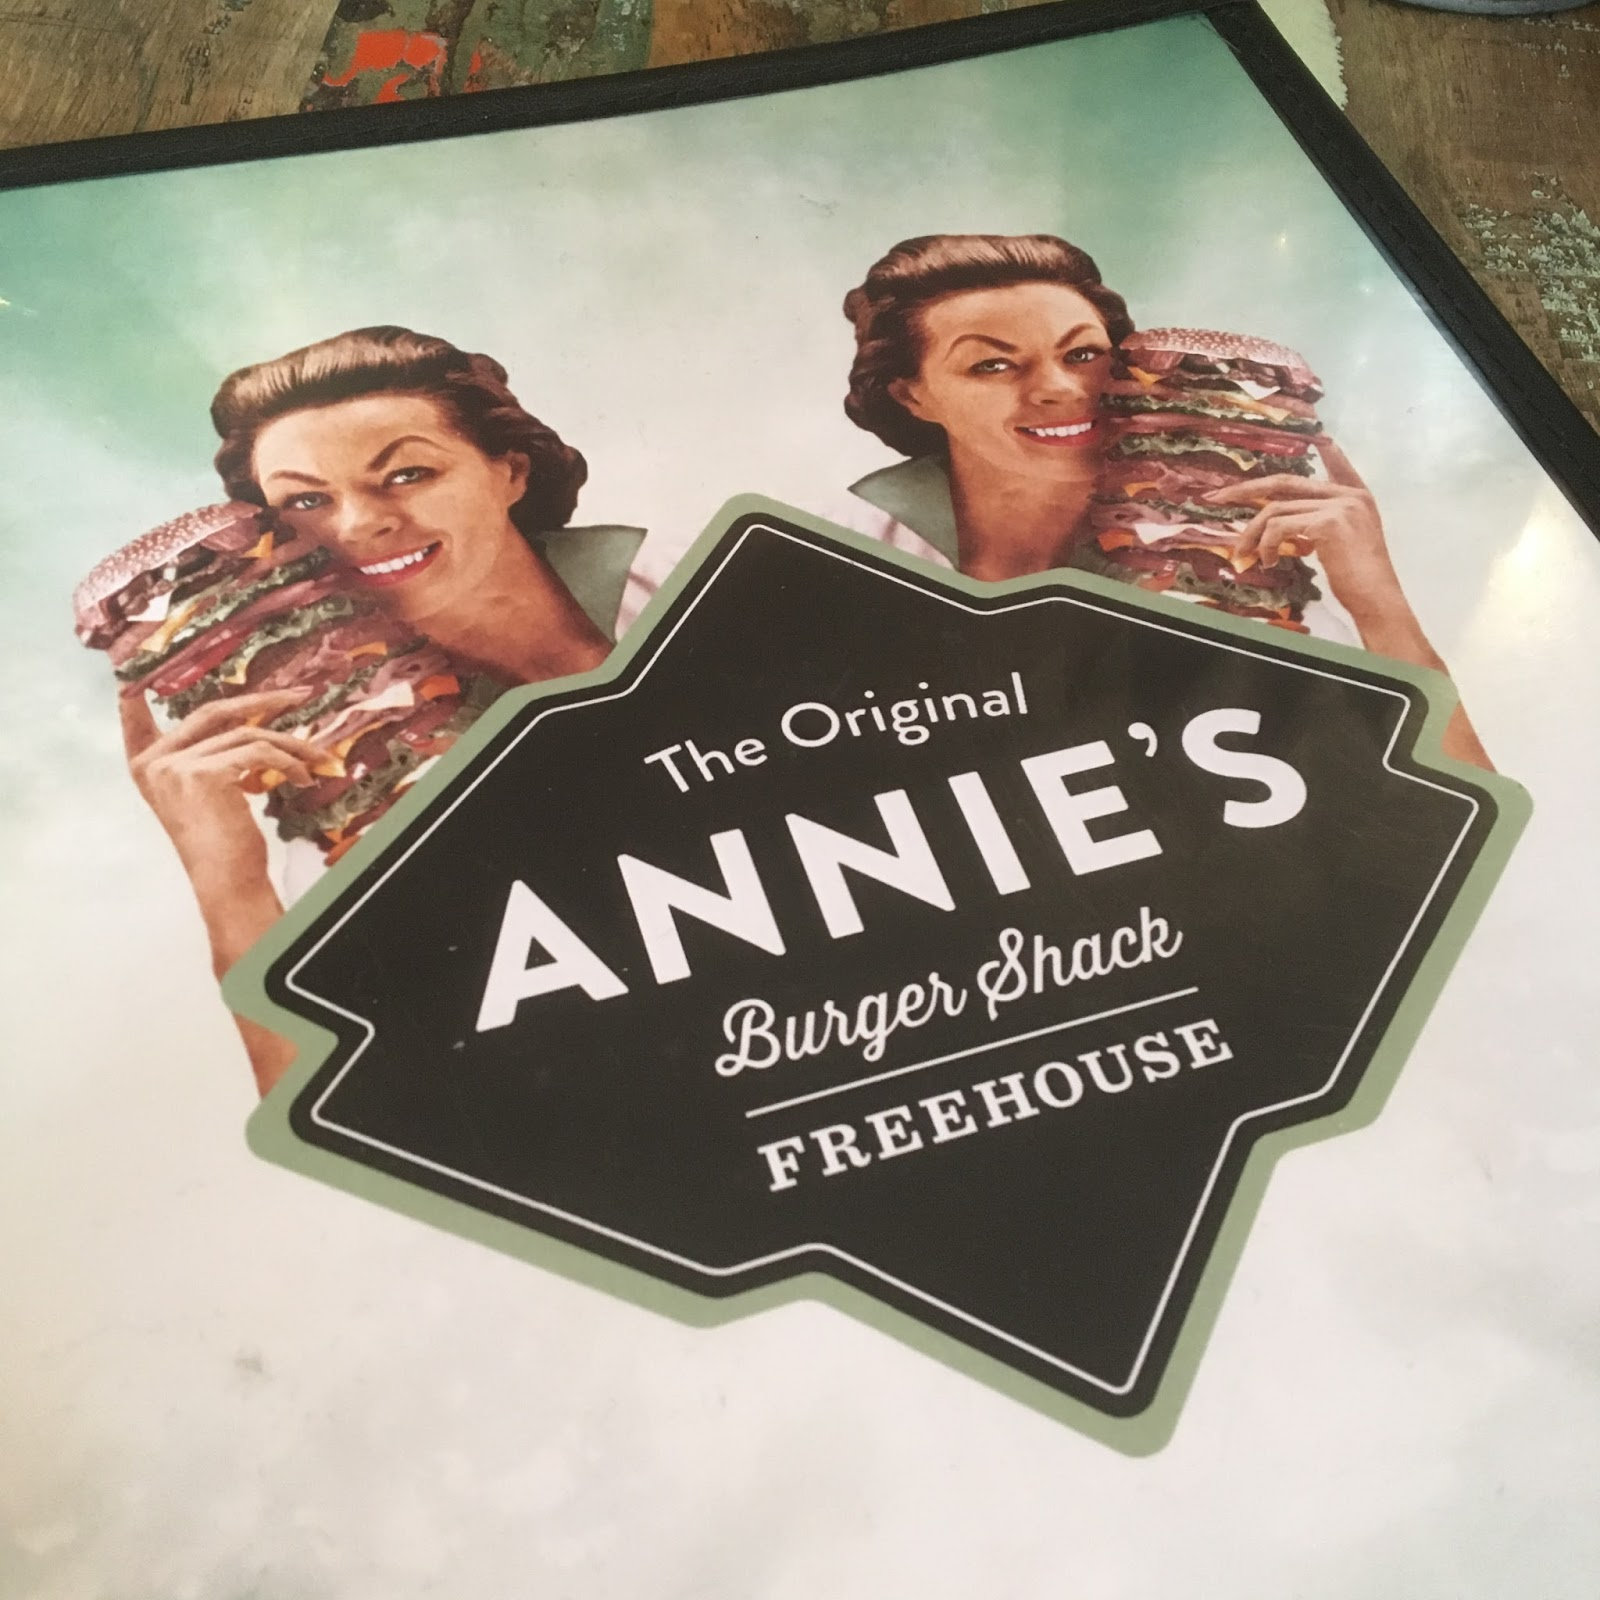 Annie's Burger Shack Nottingham menu